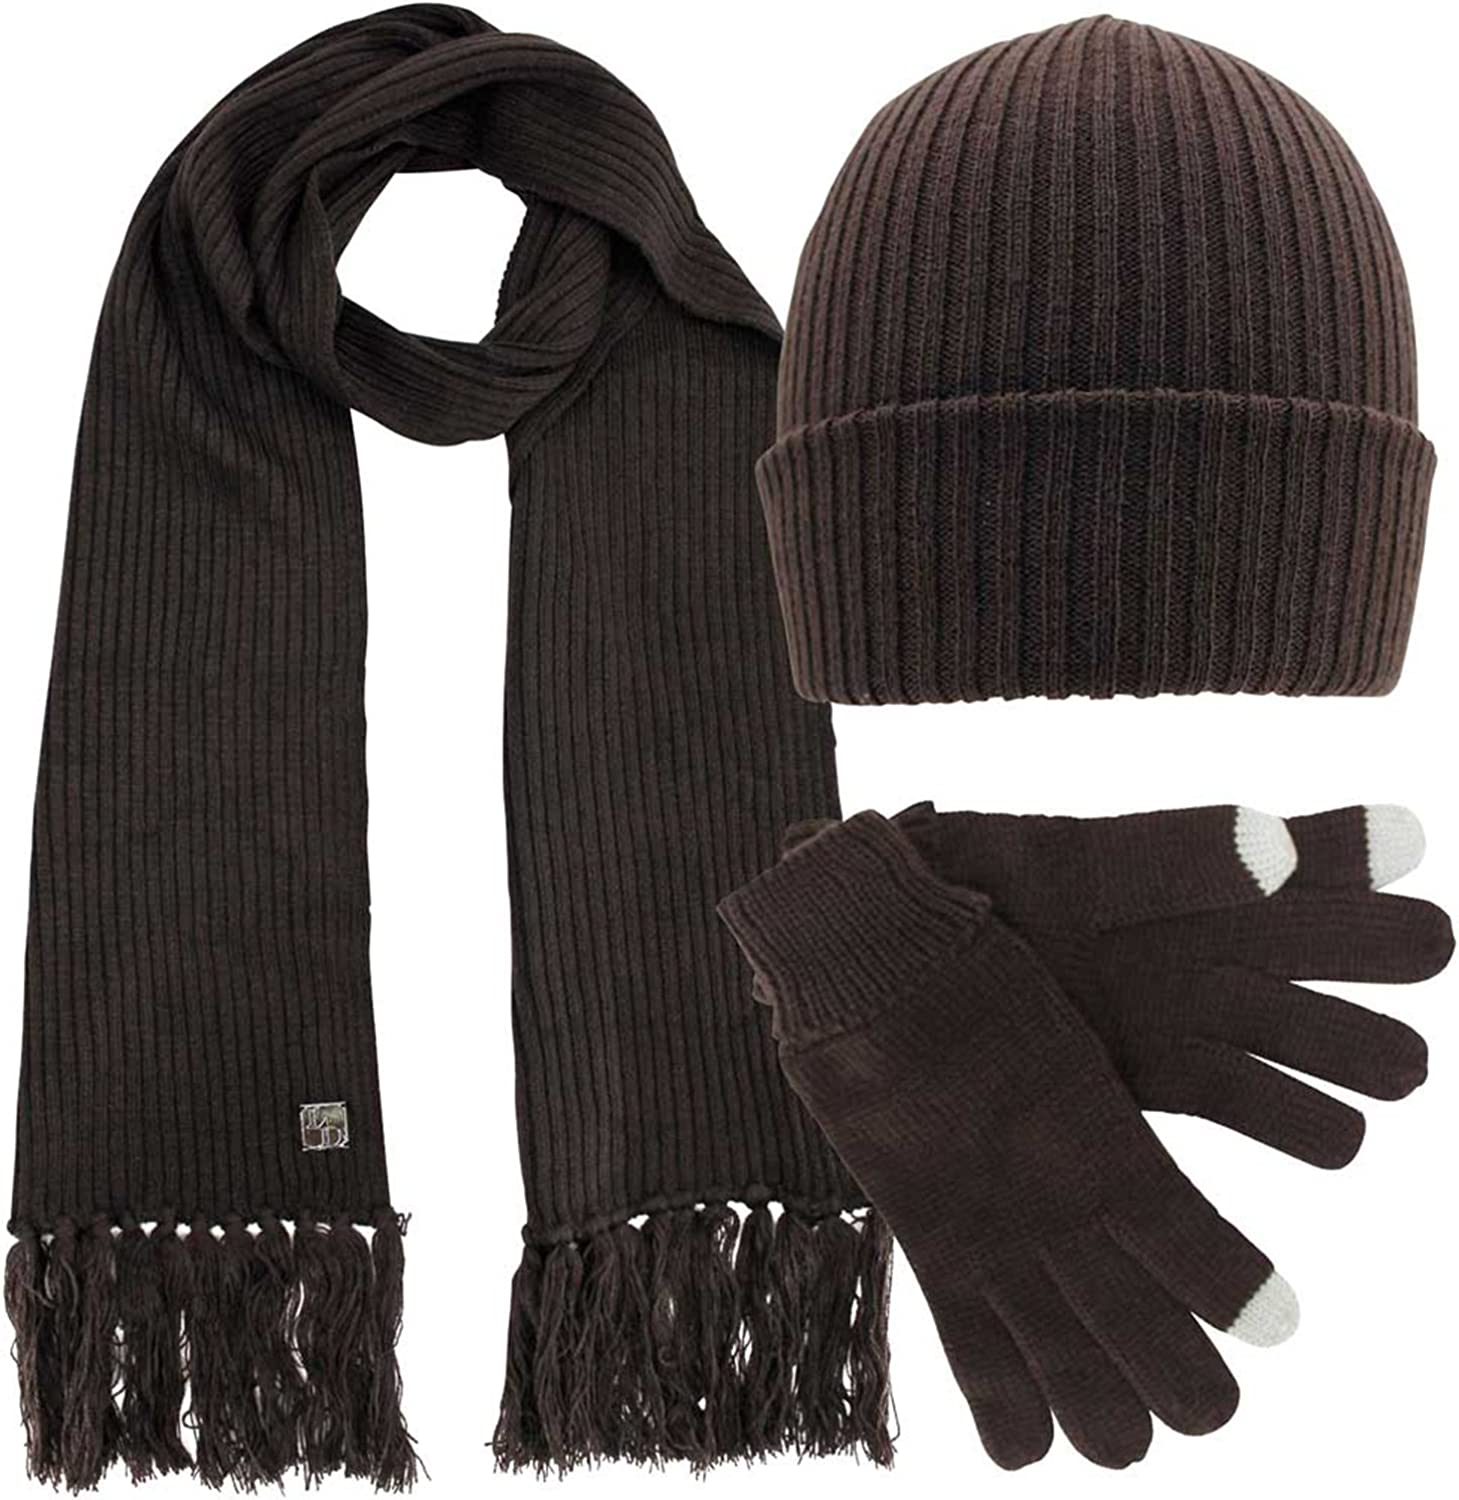 Game Roblox scarf gloves Knitted hat Christmas gift set Roblox plush keep warm neckerchief Soft Shawls Wraps Unisex Scarves touch gloves Wool cap